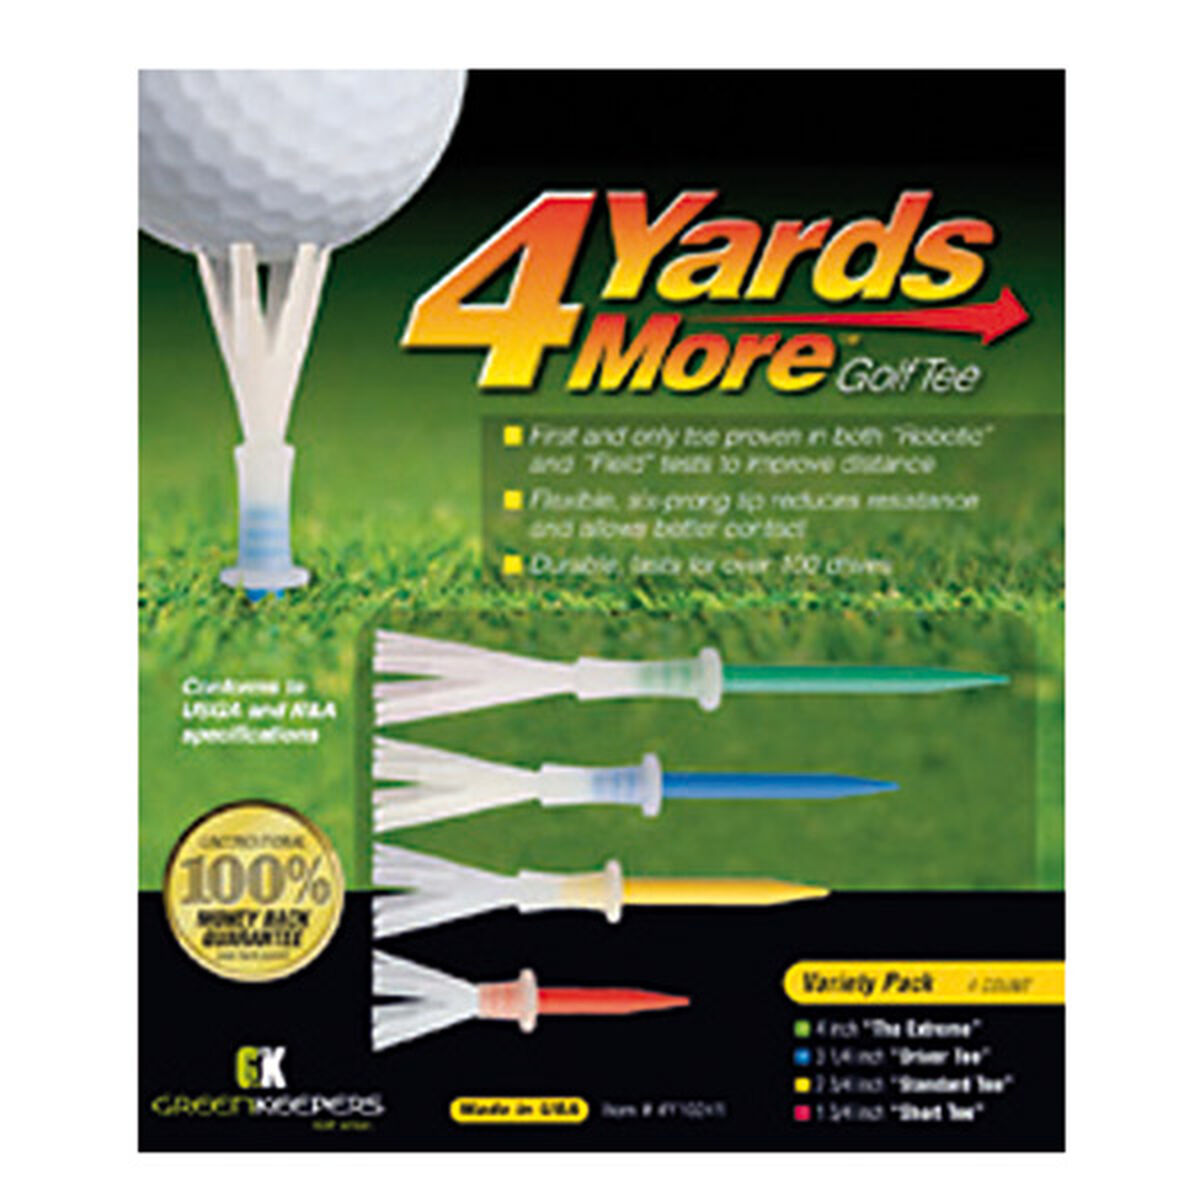 4 Yards More Variety Pack of 4 Golf Tees, one size | American Golf